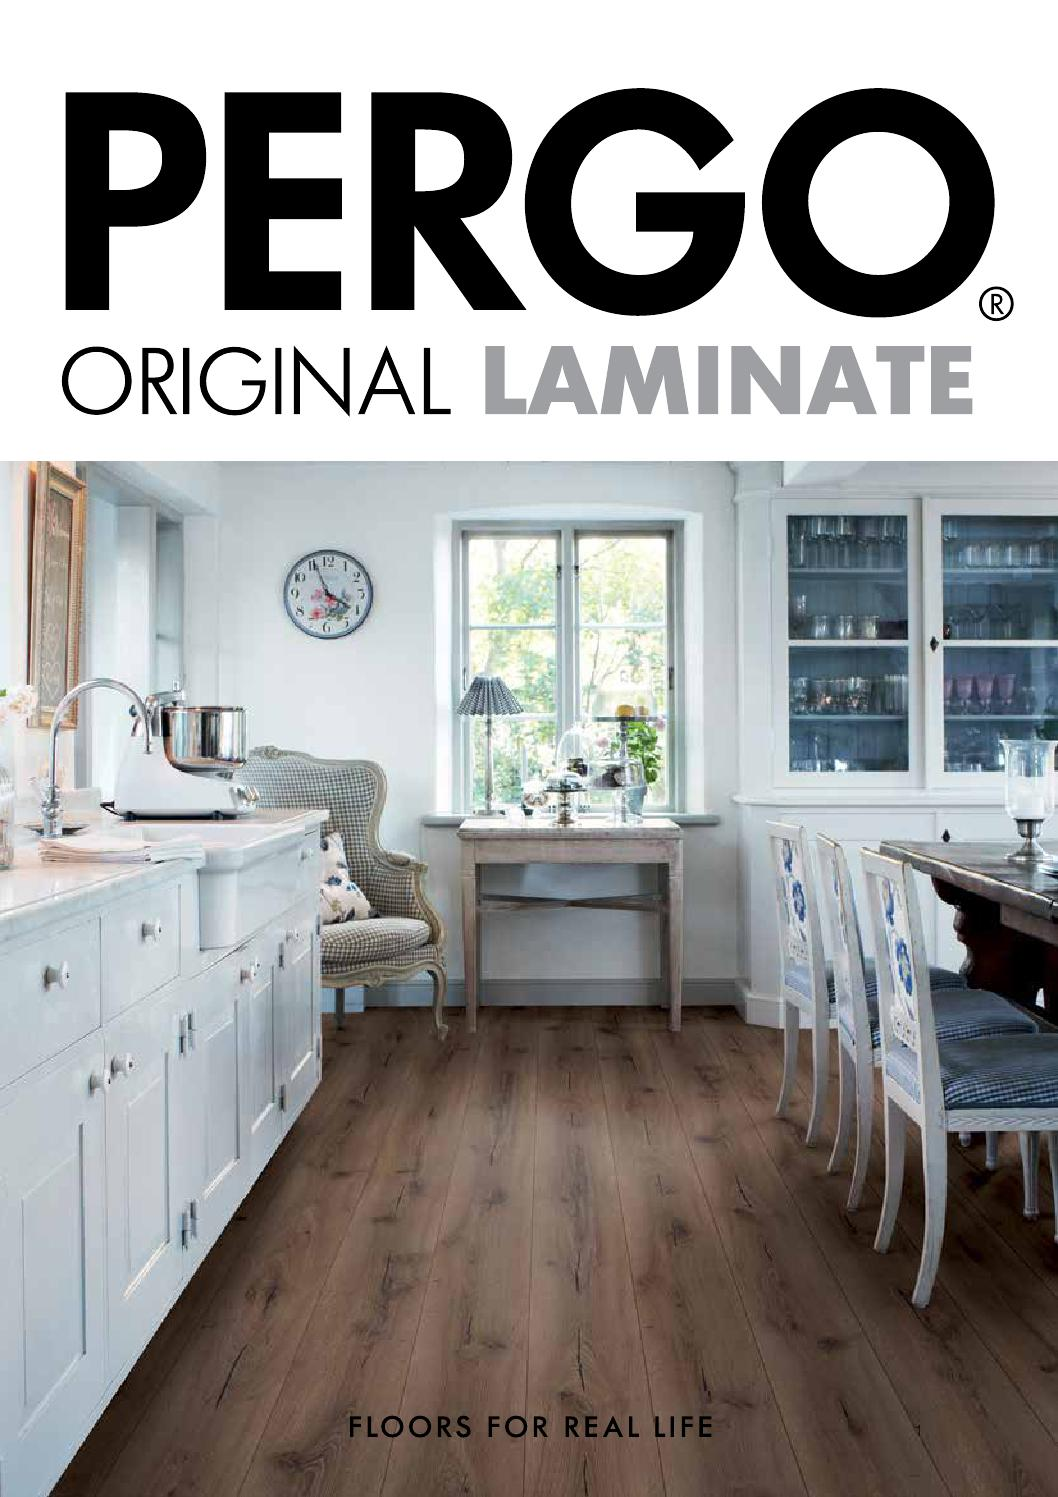 Pergo 2014 Laminate No By Unilin Issuu